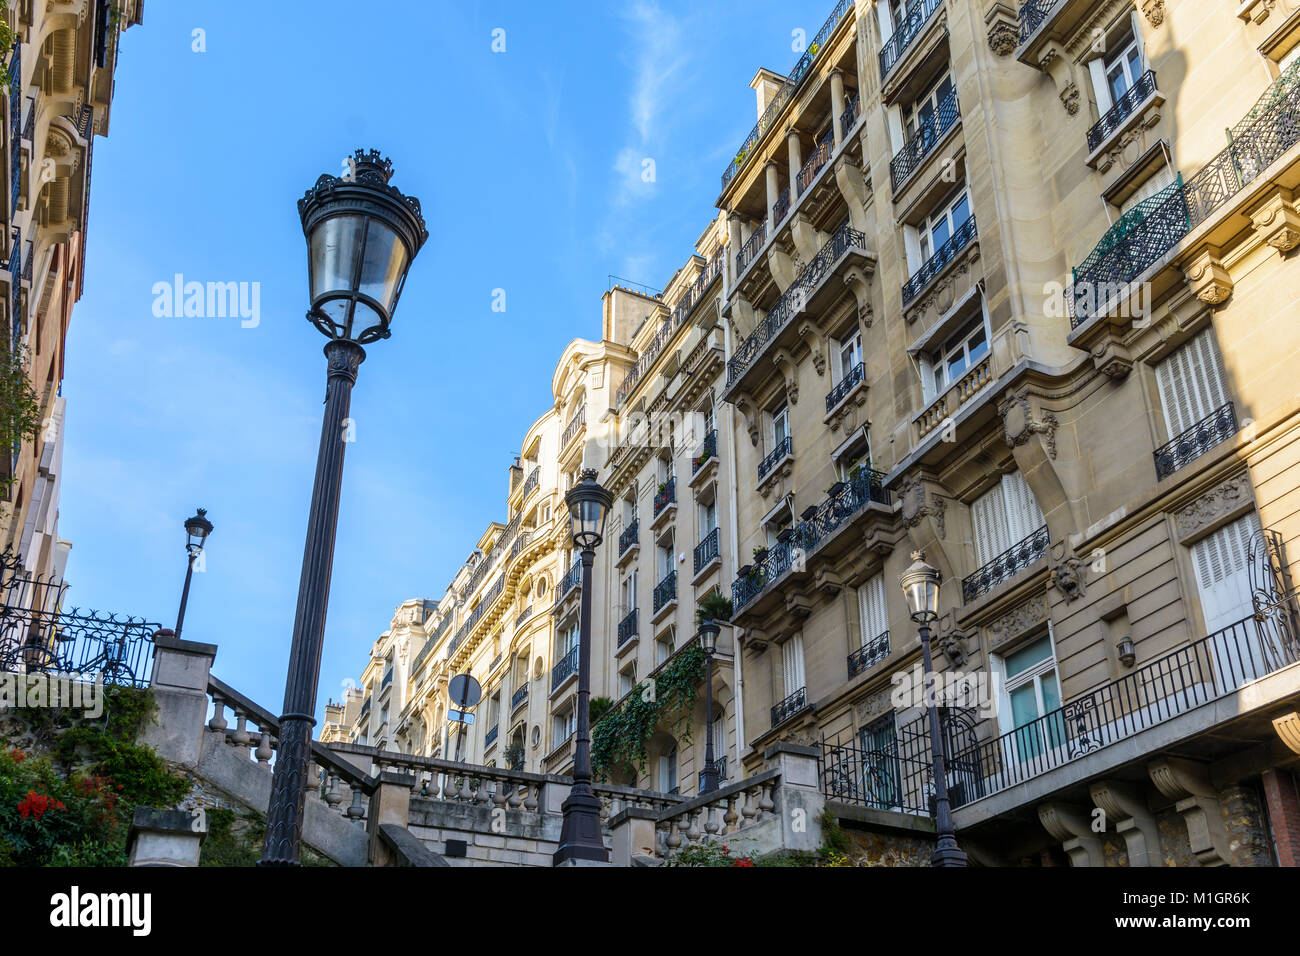 Low angle view of opulent-looking, Haussmannian style buildings in the chic neighborhoods of Paris, with period - Stock Image